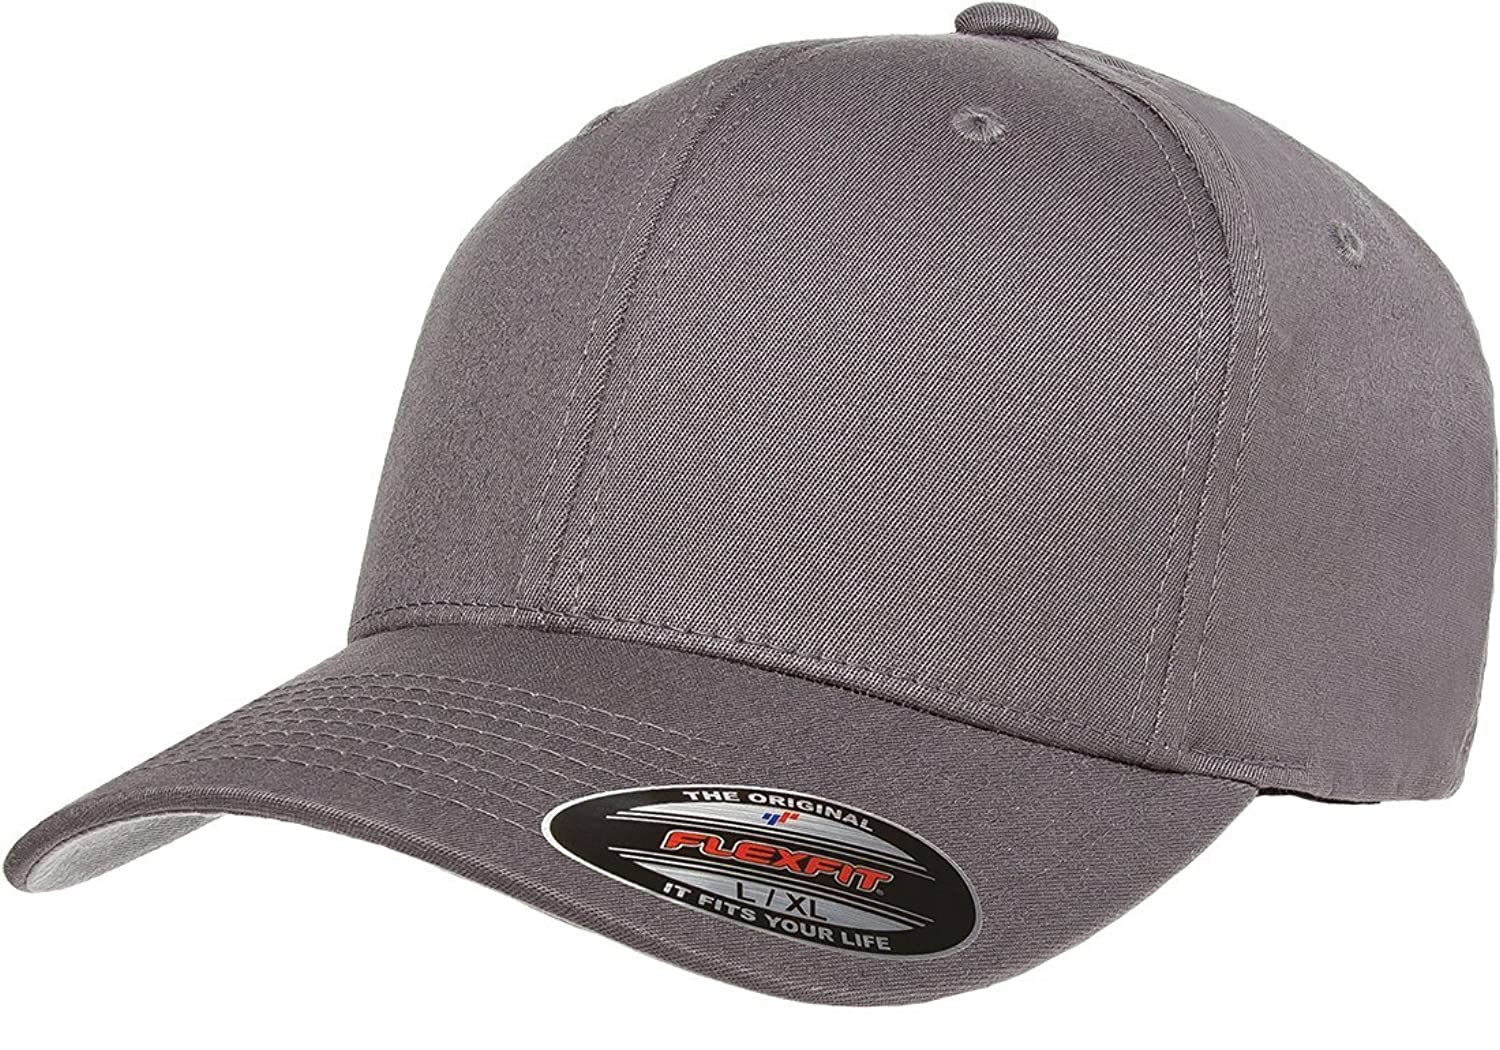 Flexfit 6-Panel Structured Mid-Profile Cotton Twill Cap (5001)